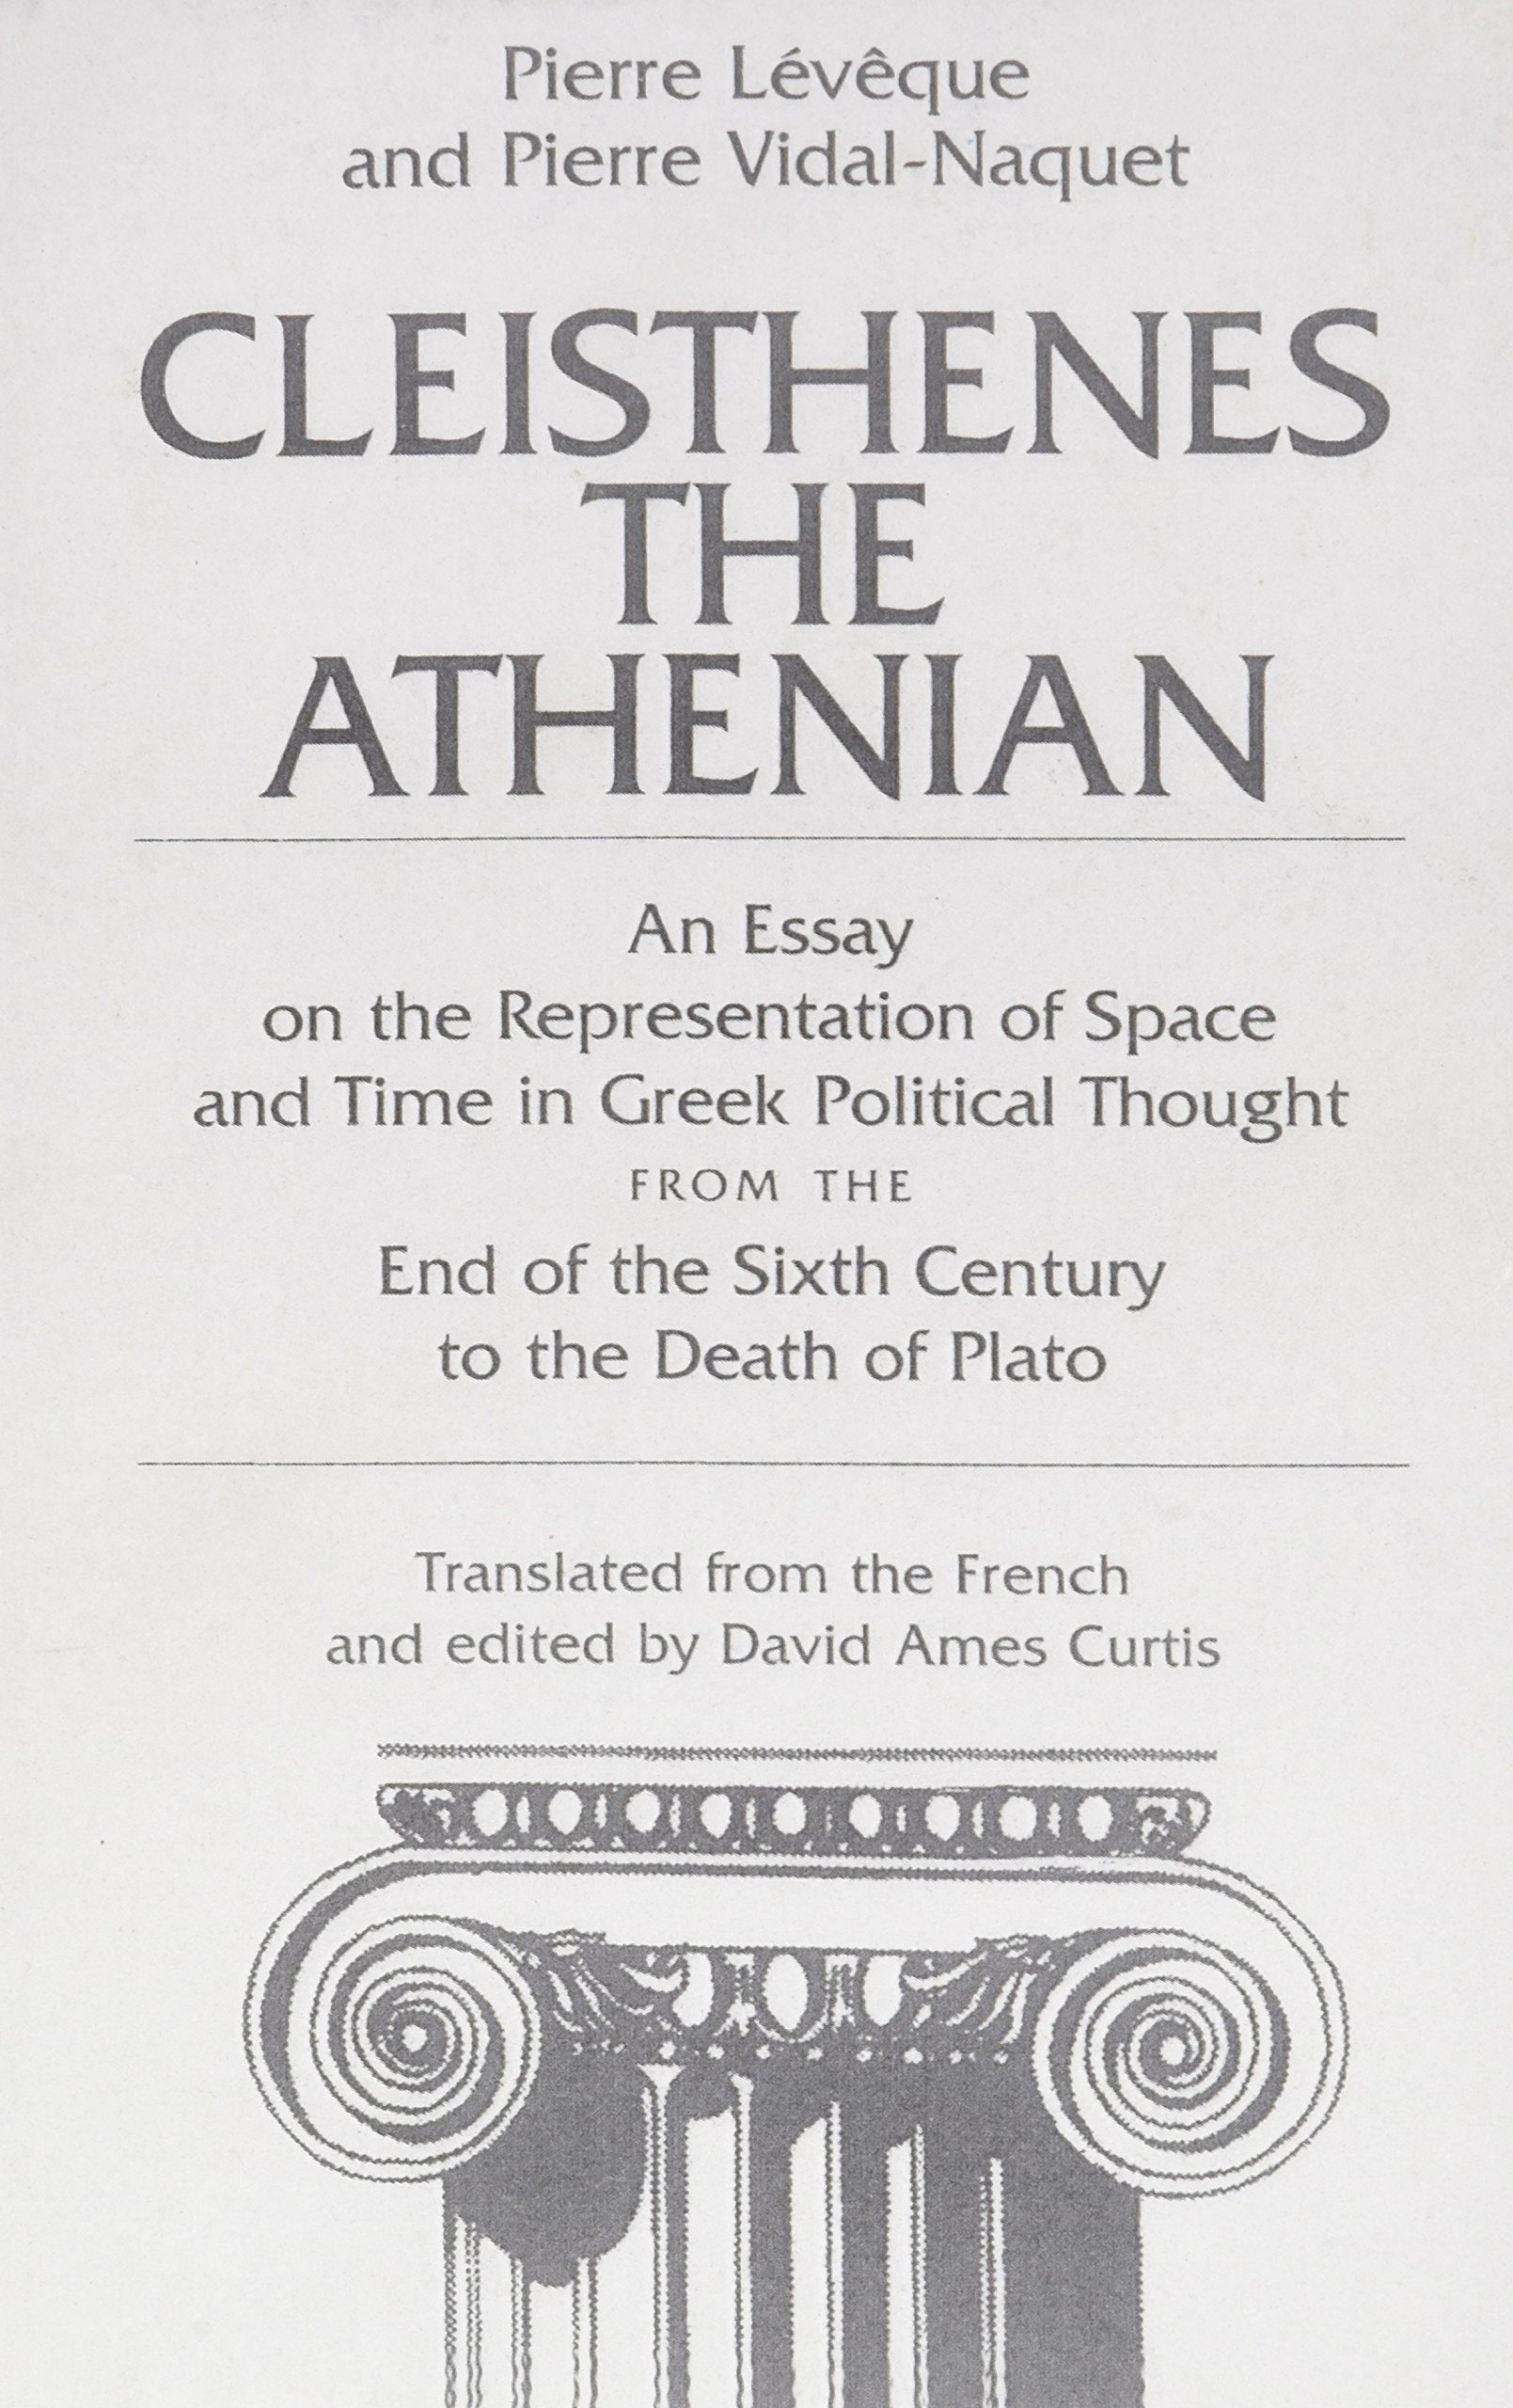 cleisthenes the athenian an essay on the representation of space cleisthenes the athenian an essay on the representation of space and time in greek political thought from the end of the sixth century to the death of